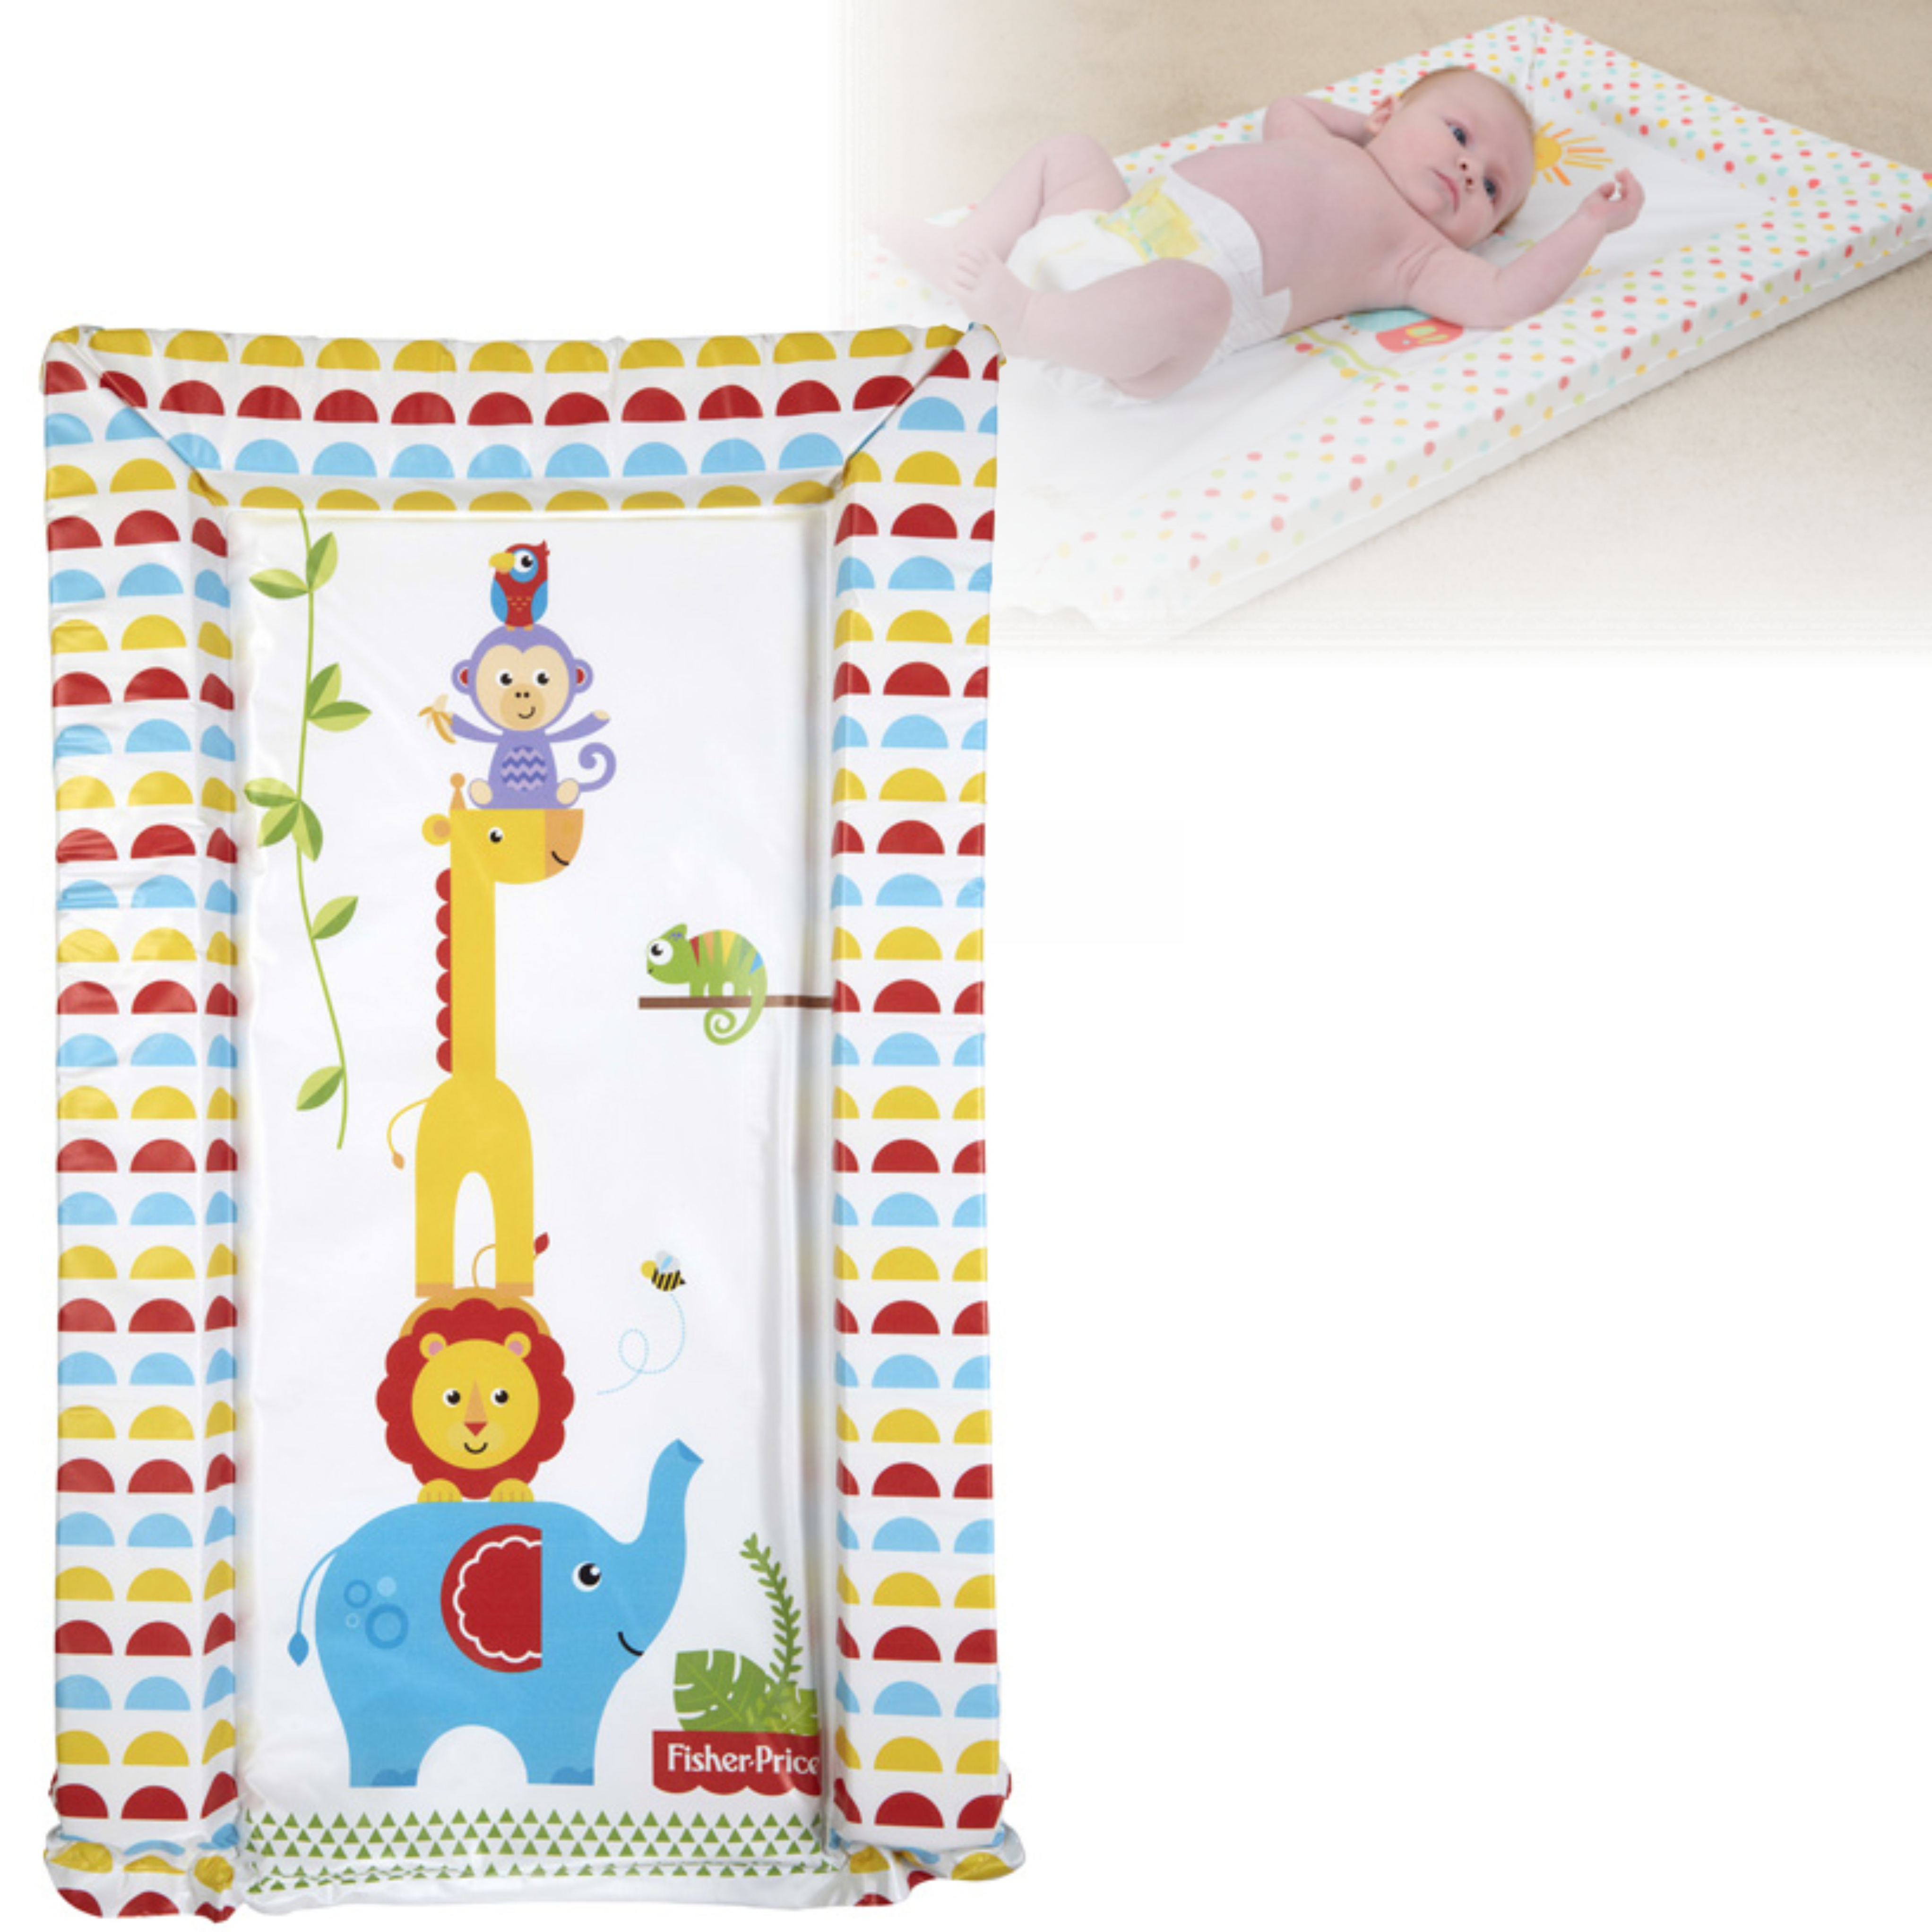 Fisher-Price Baby's Nappy Changing Mat - Reach the Sky | Comfort+Easy To Wipe | 0m+